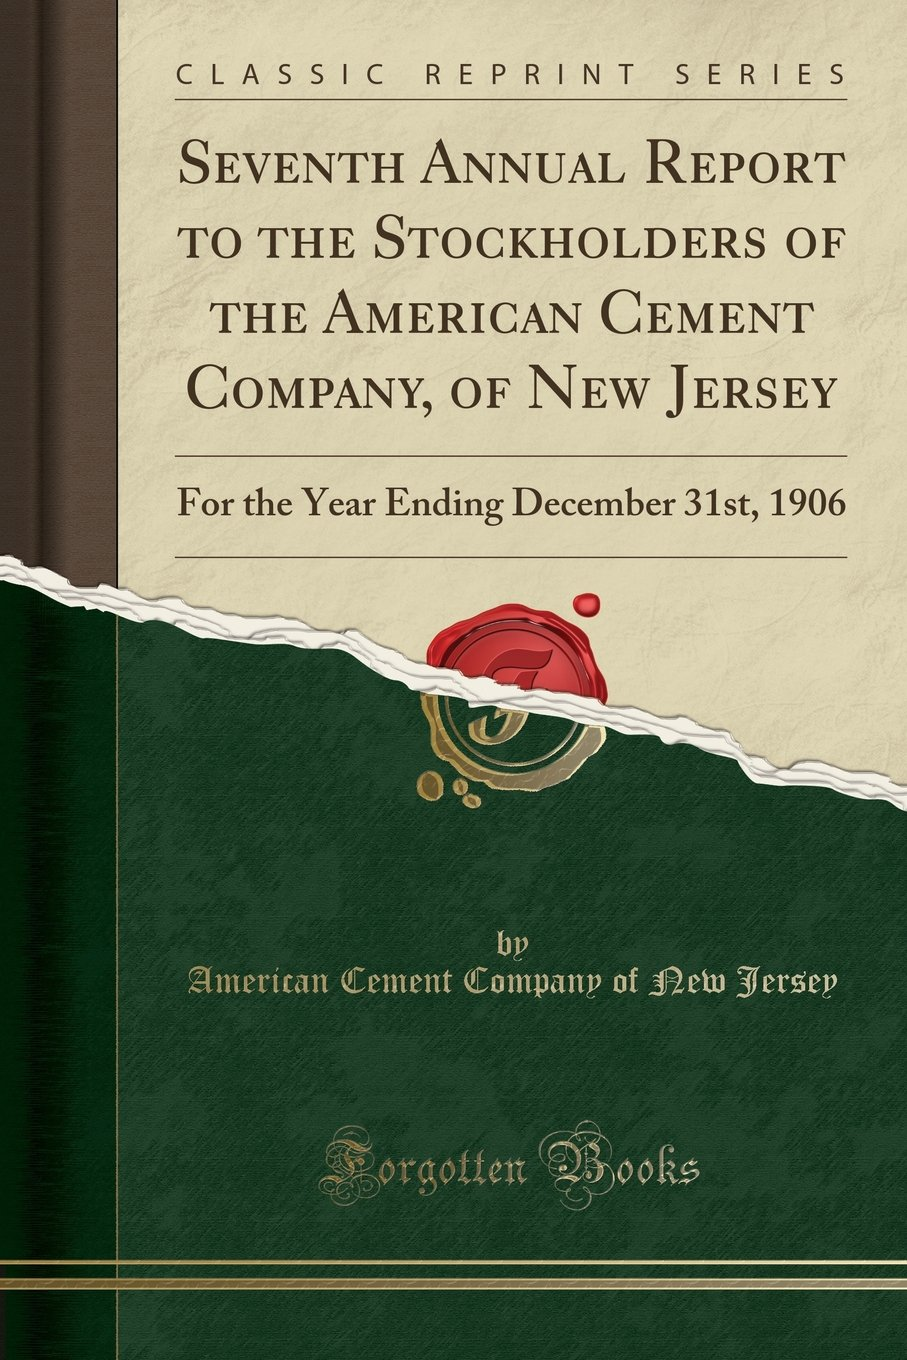 Seventh Annual Report to the Stockholders of the American Cement Company, of New Jersey: For the Year Ending December 31st, 1906 (Classic Reprint) PDF